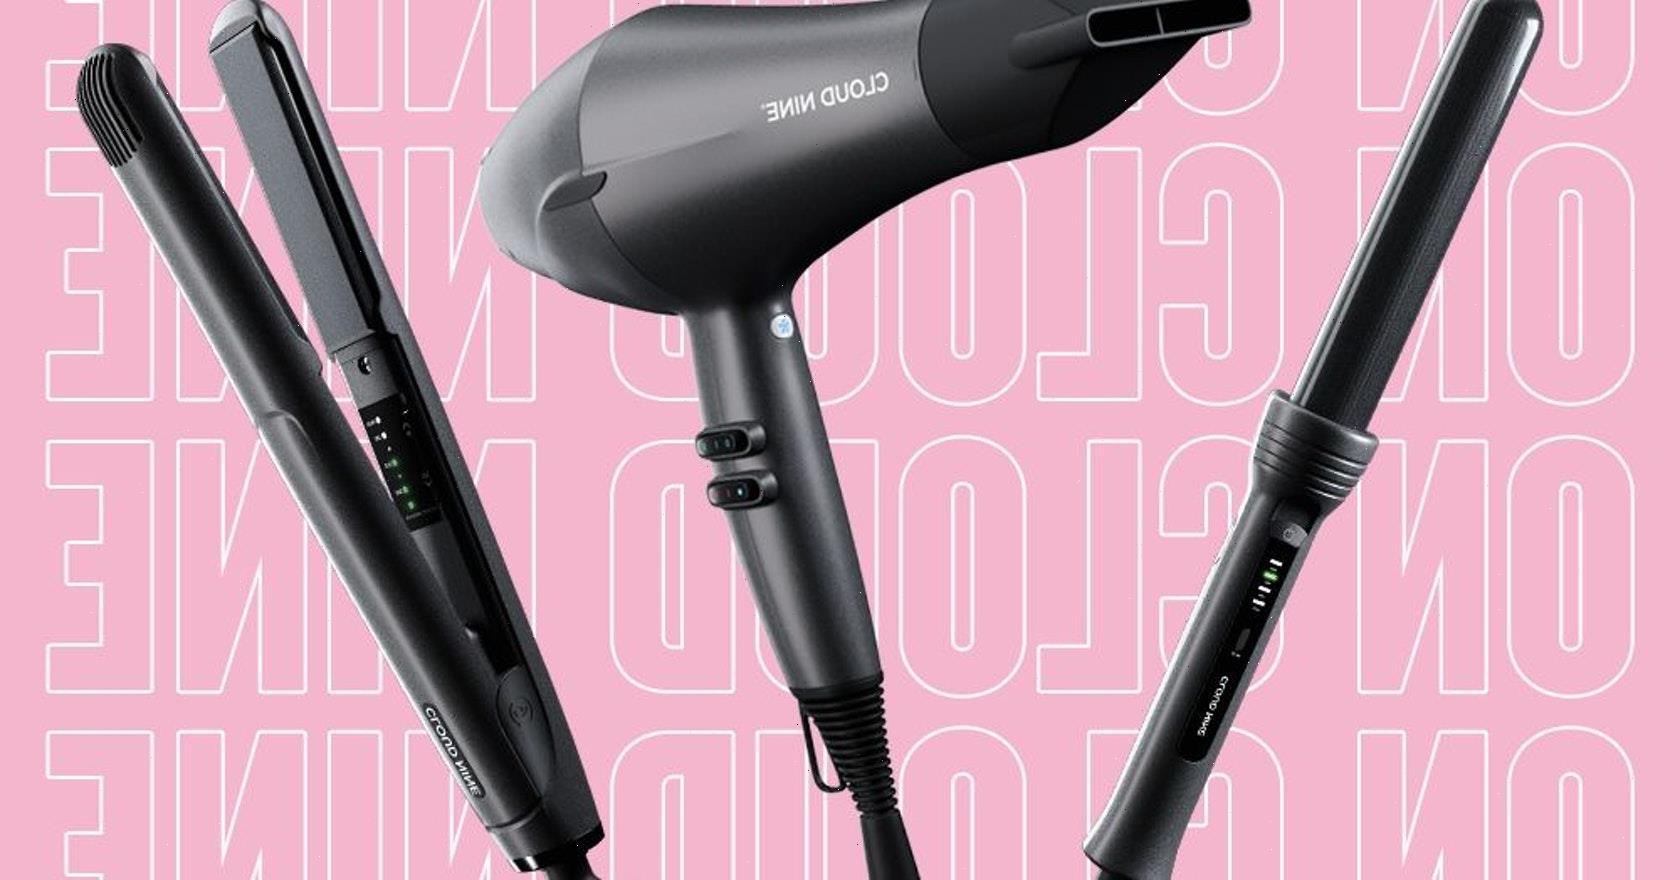 Cloud Nine has launched the first ever hair tool rental service